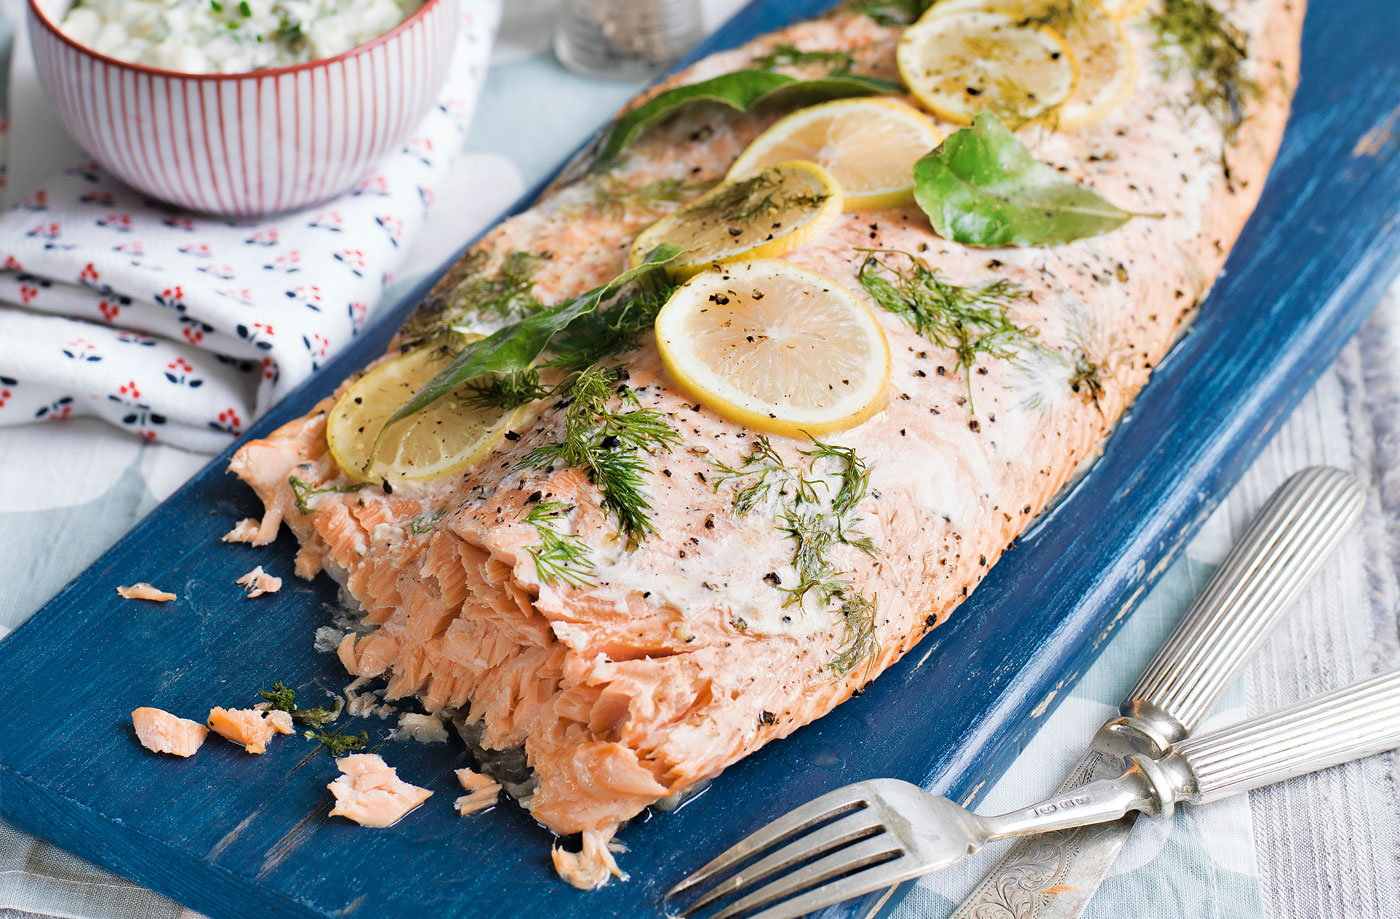 Whole Foods Salmon Healthy